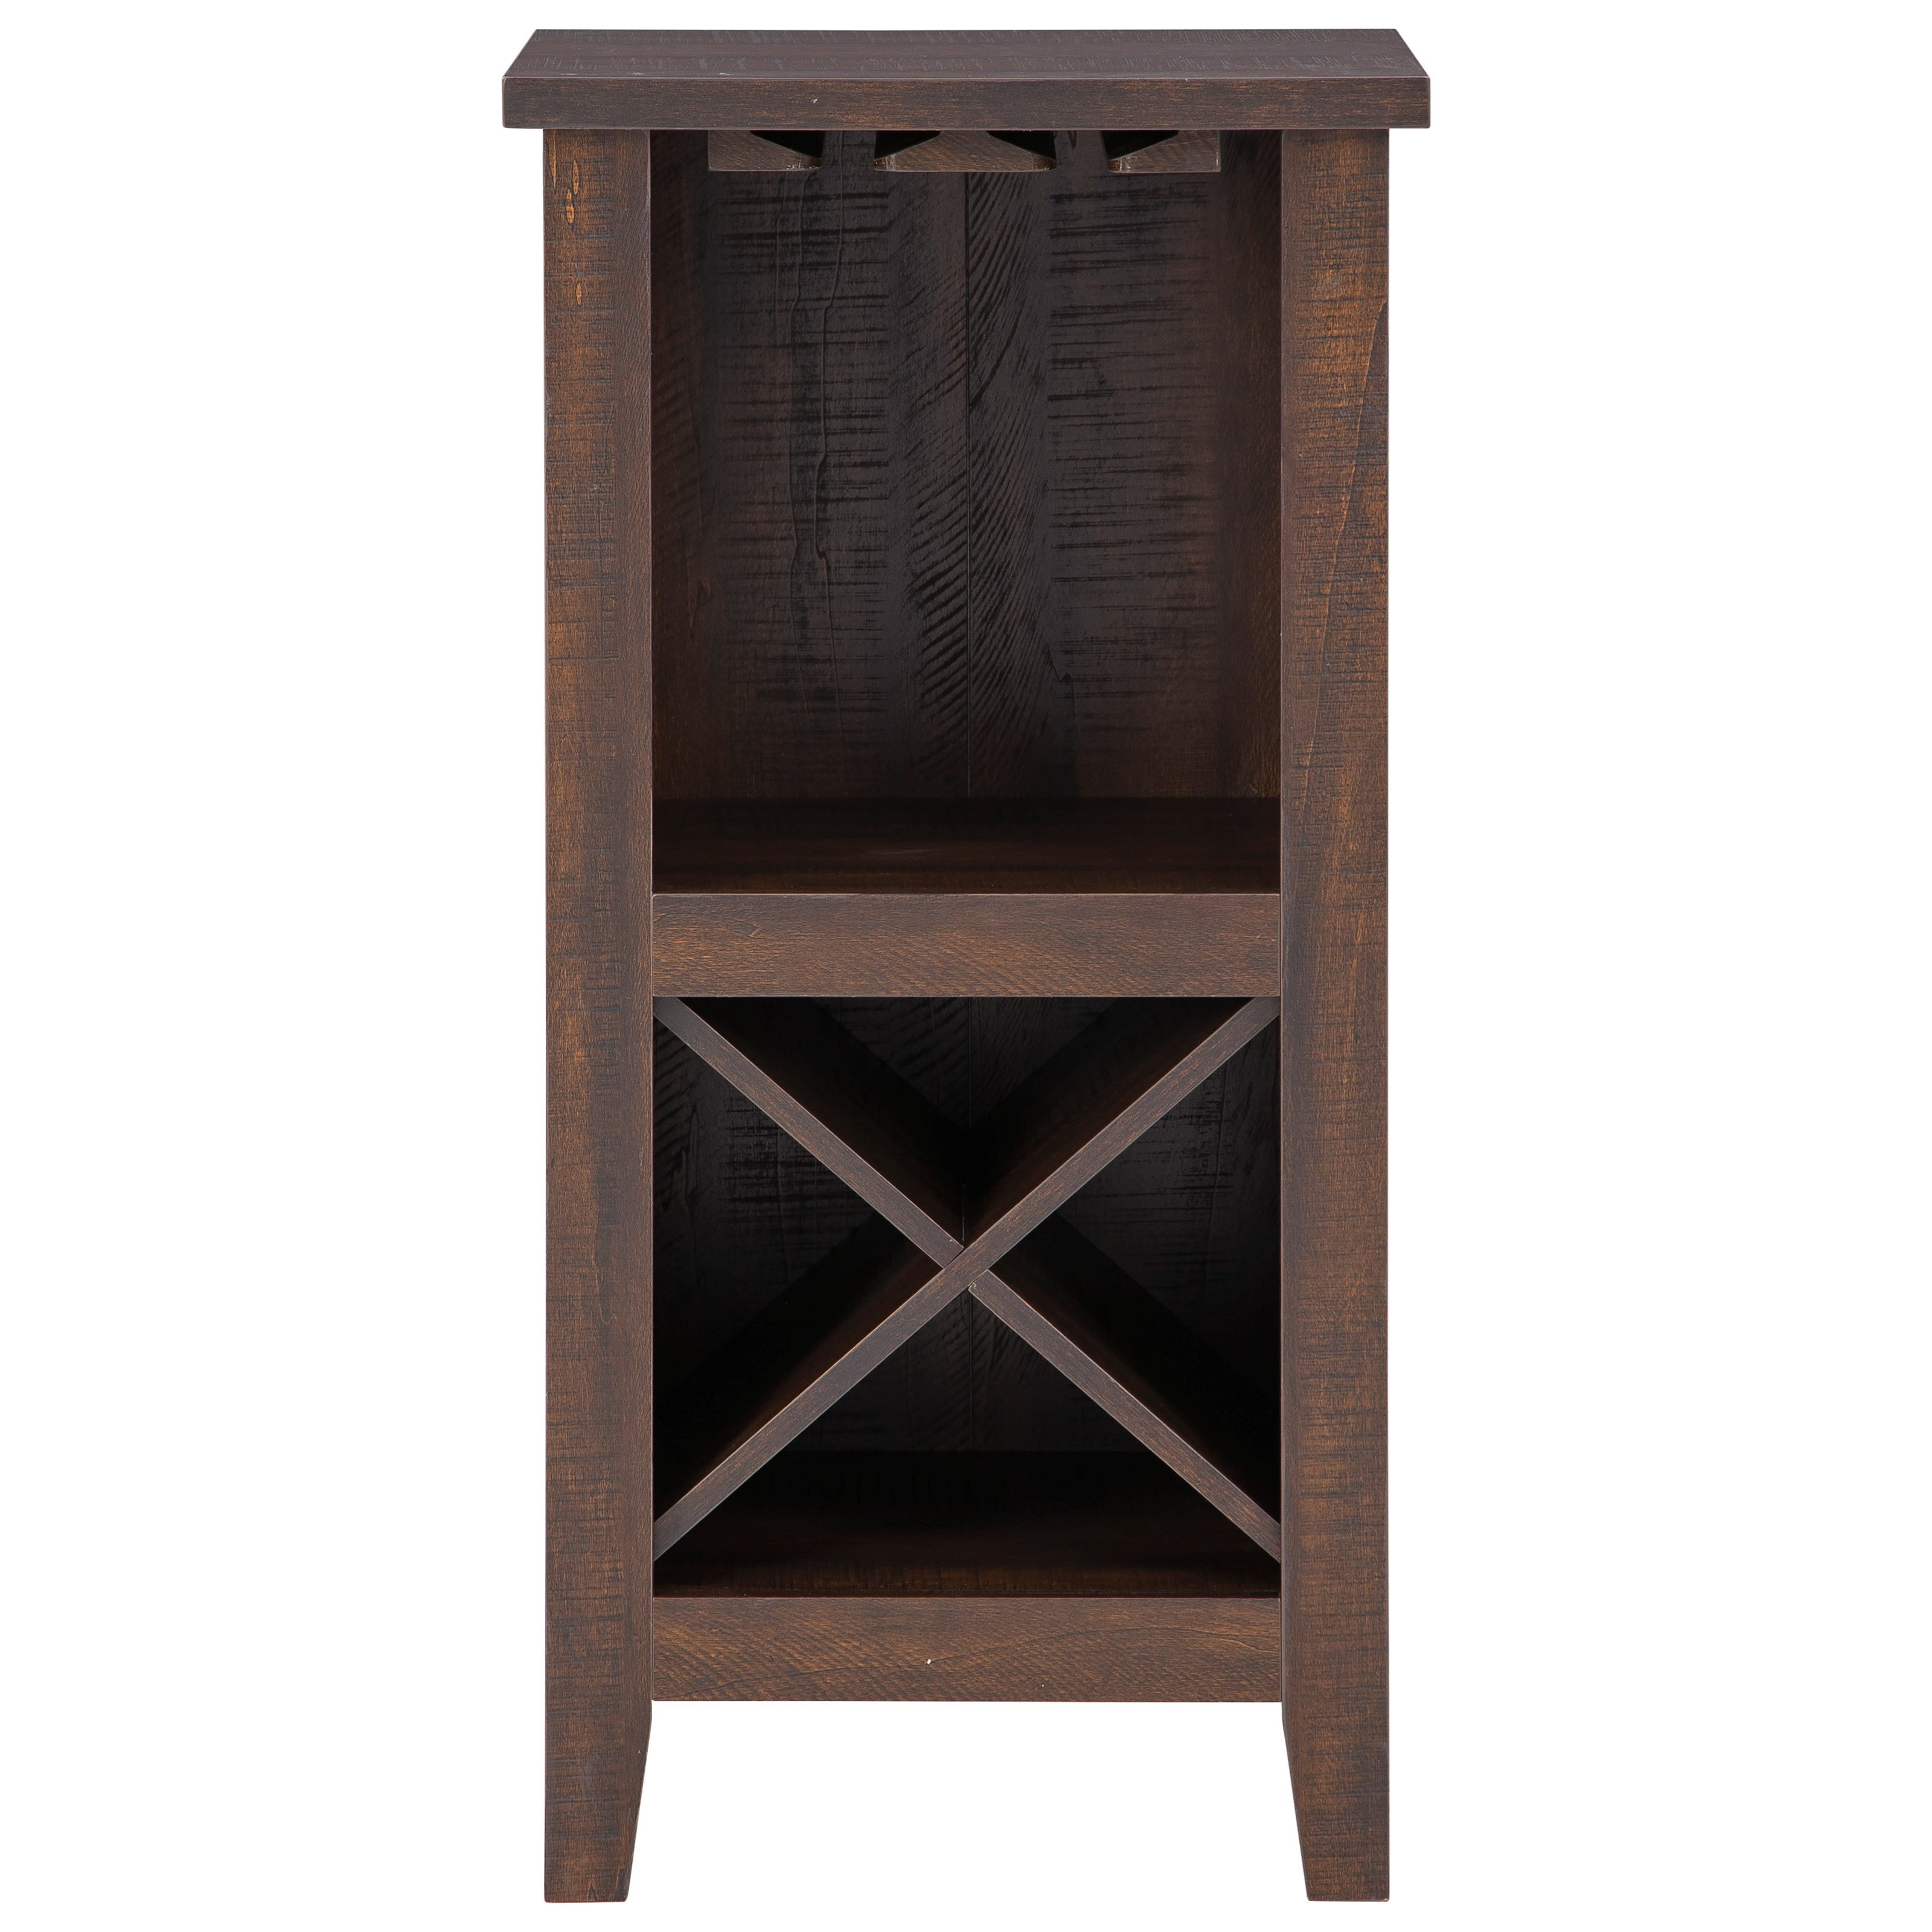 Turnley Wine Cabinet by Signature Design by Ashley at Zak's Warehouse Clearance Center